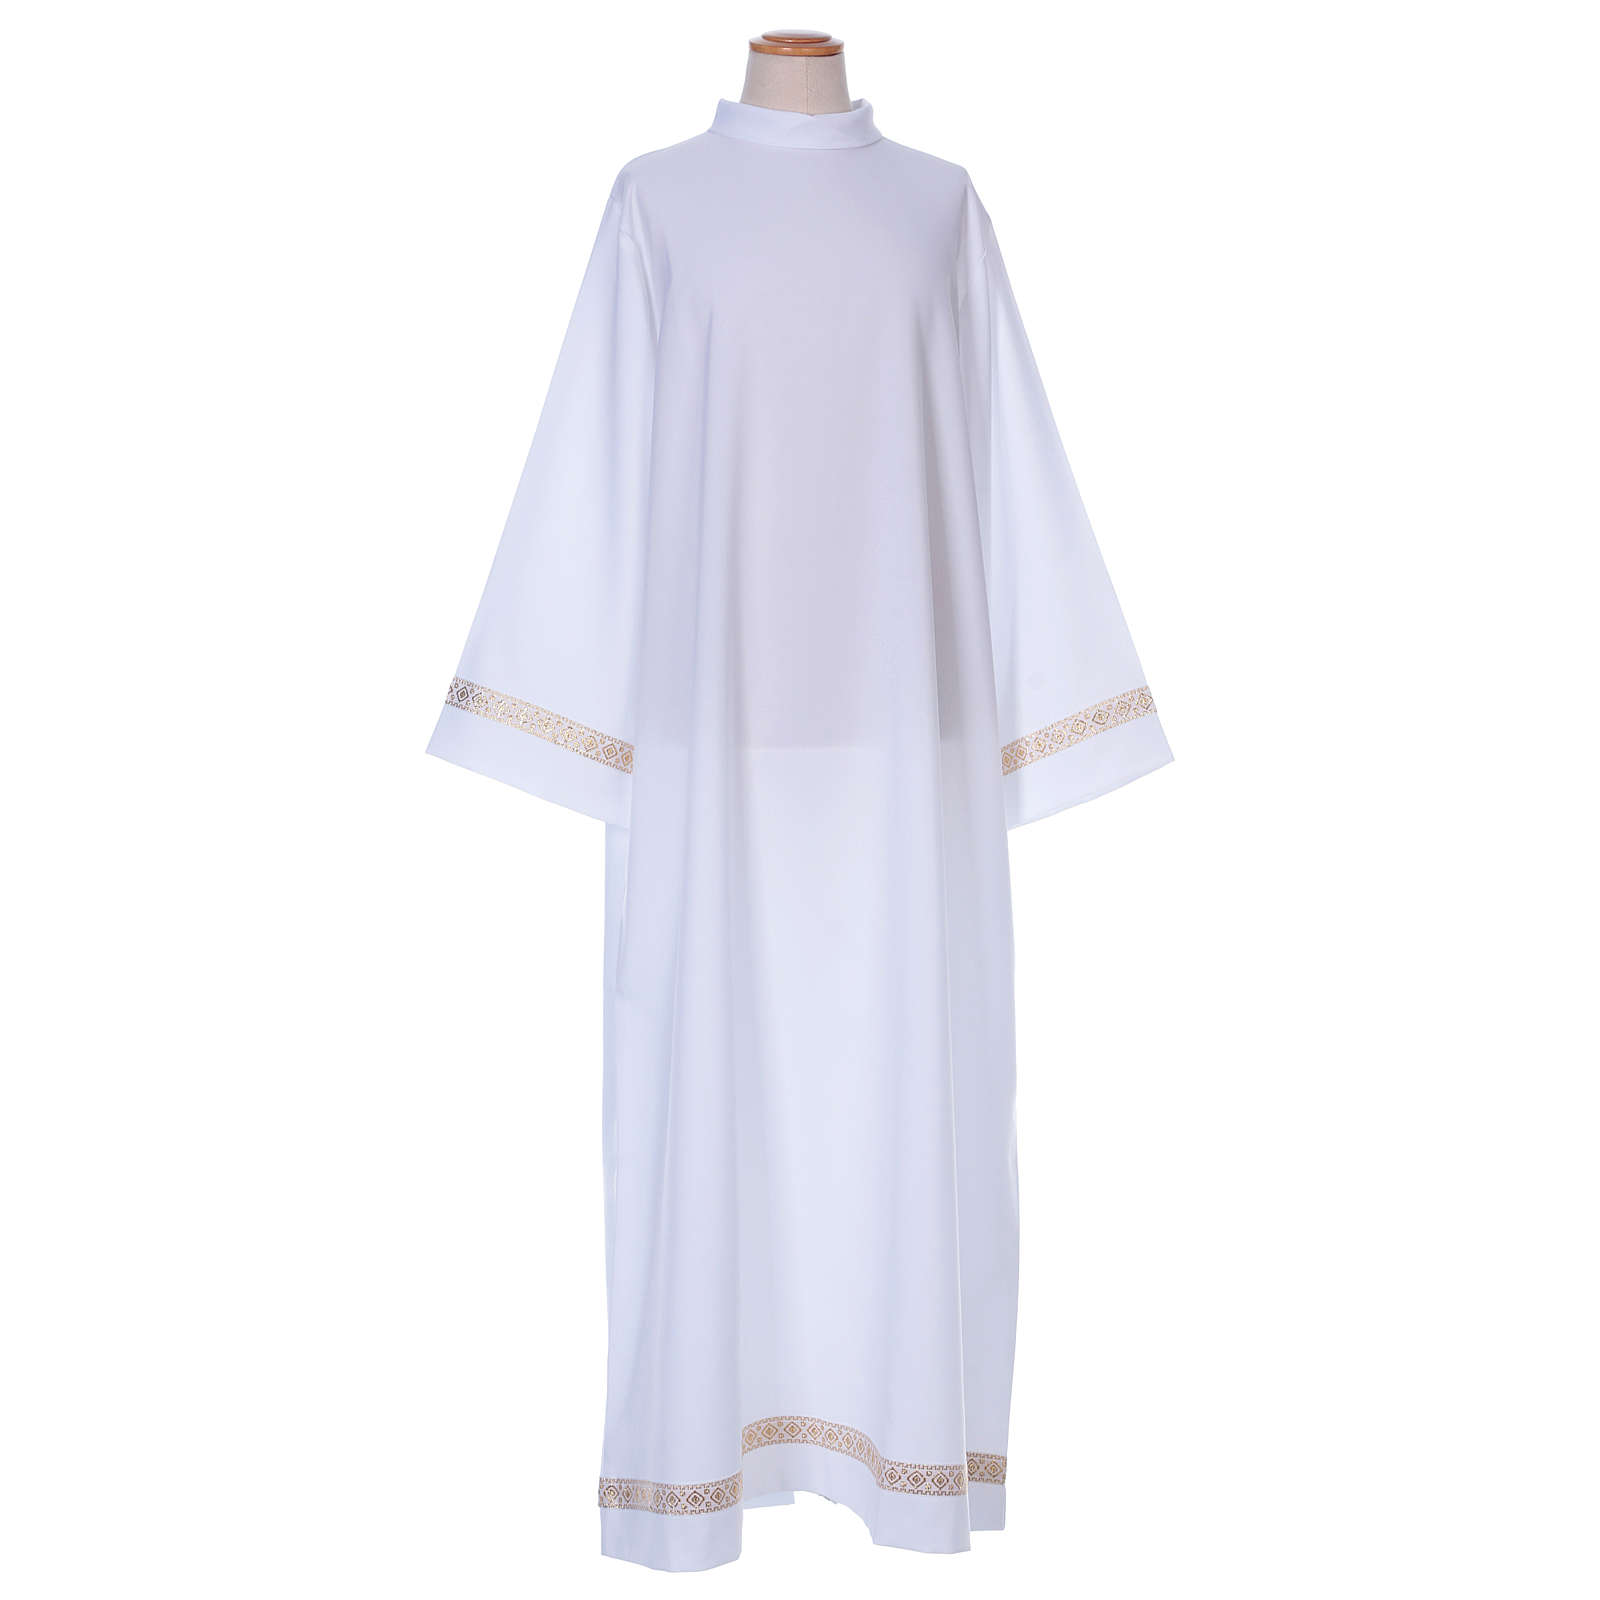 First Communion alb with braided border on hem and sleeves 4